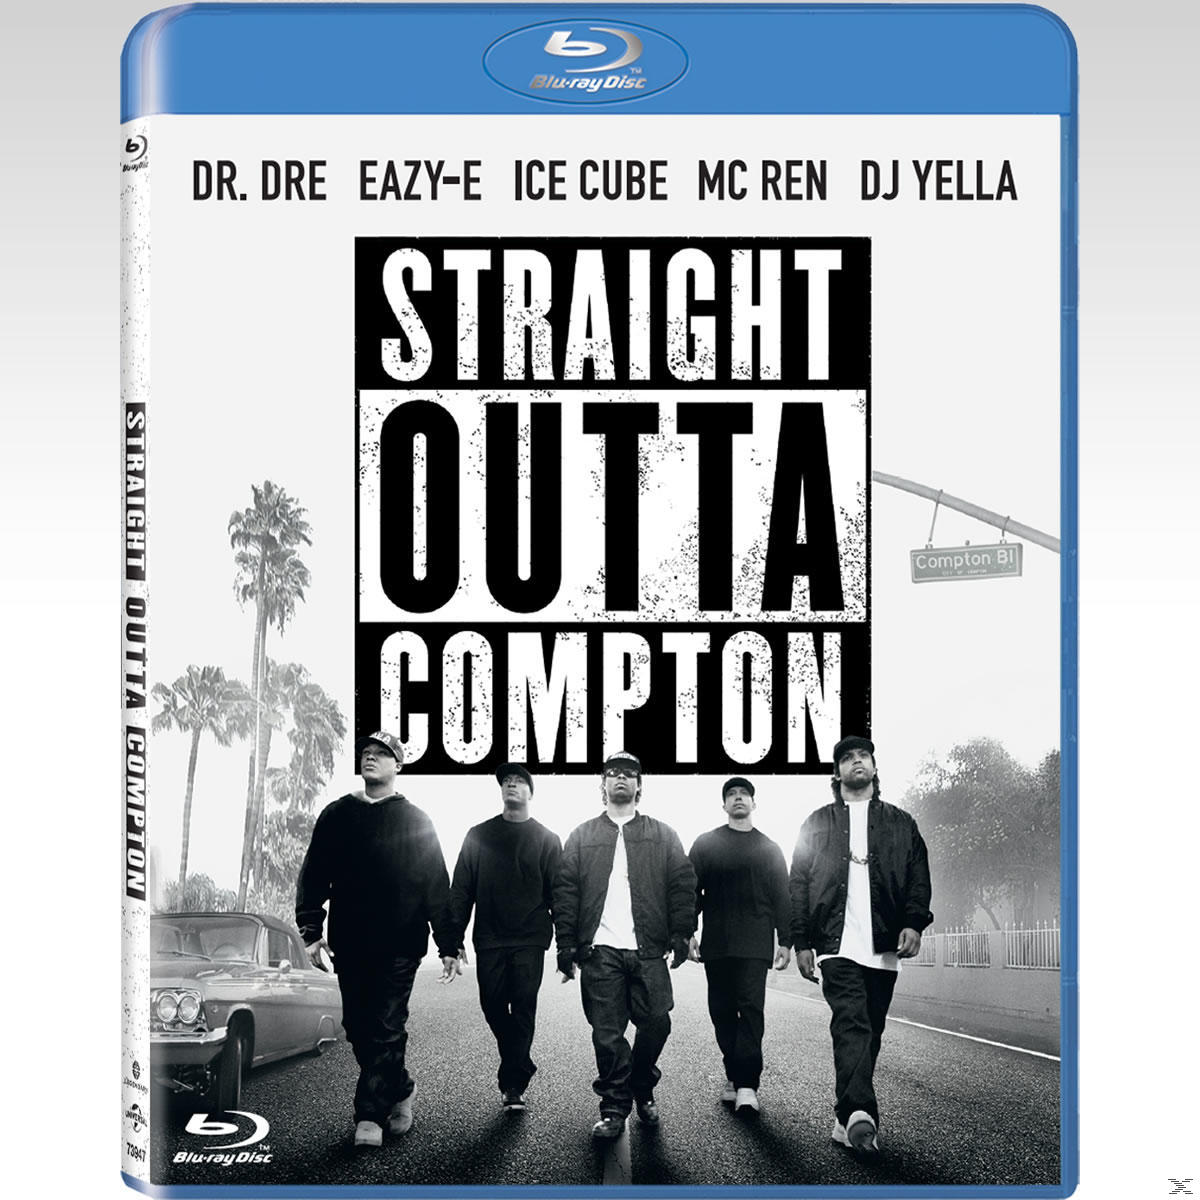 STRAIGHT OUTTA COMPTON (BLU RAY)